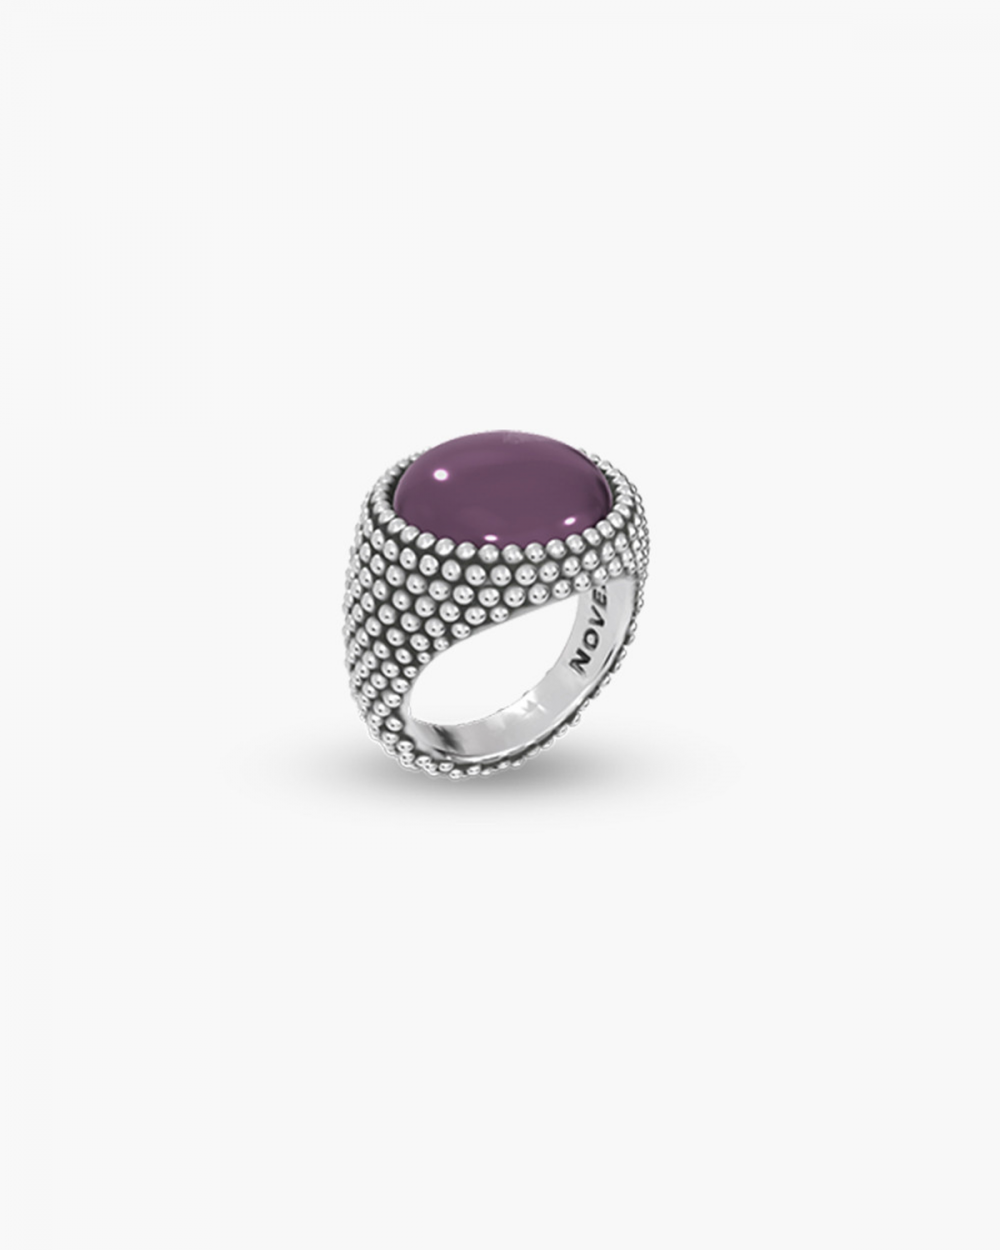 MYNOVE25 DOTTED ROUND SIGNET RING WITH STONE NOVE25